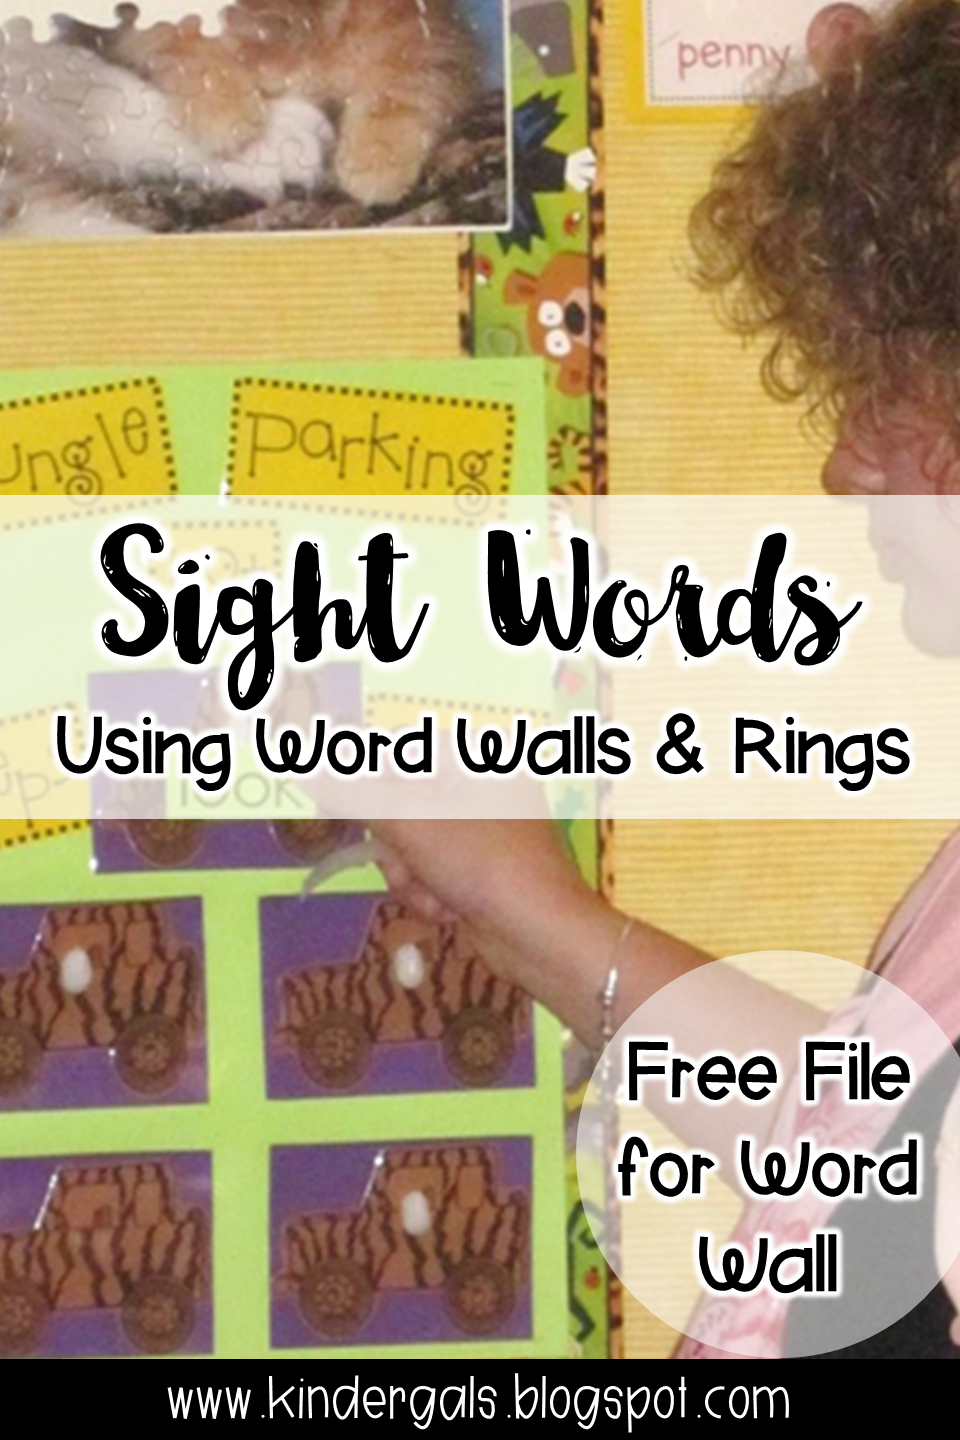 KinderGals: Sight Words: Word Walls and Word Rings